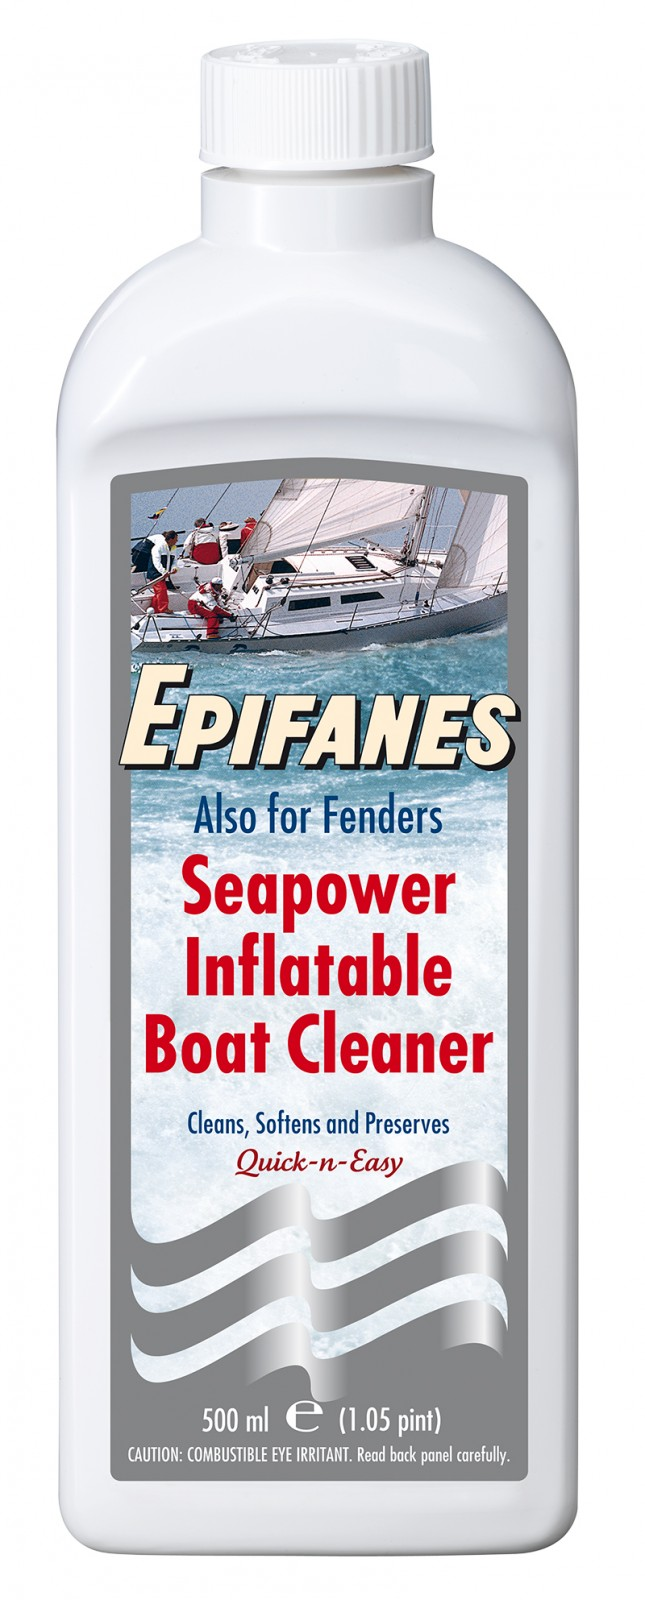 Epifanes Seapower Inflatable Boat Cleaner